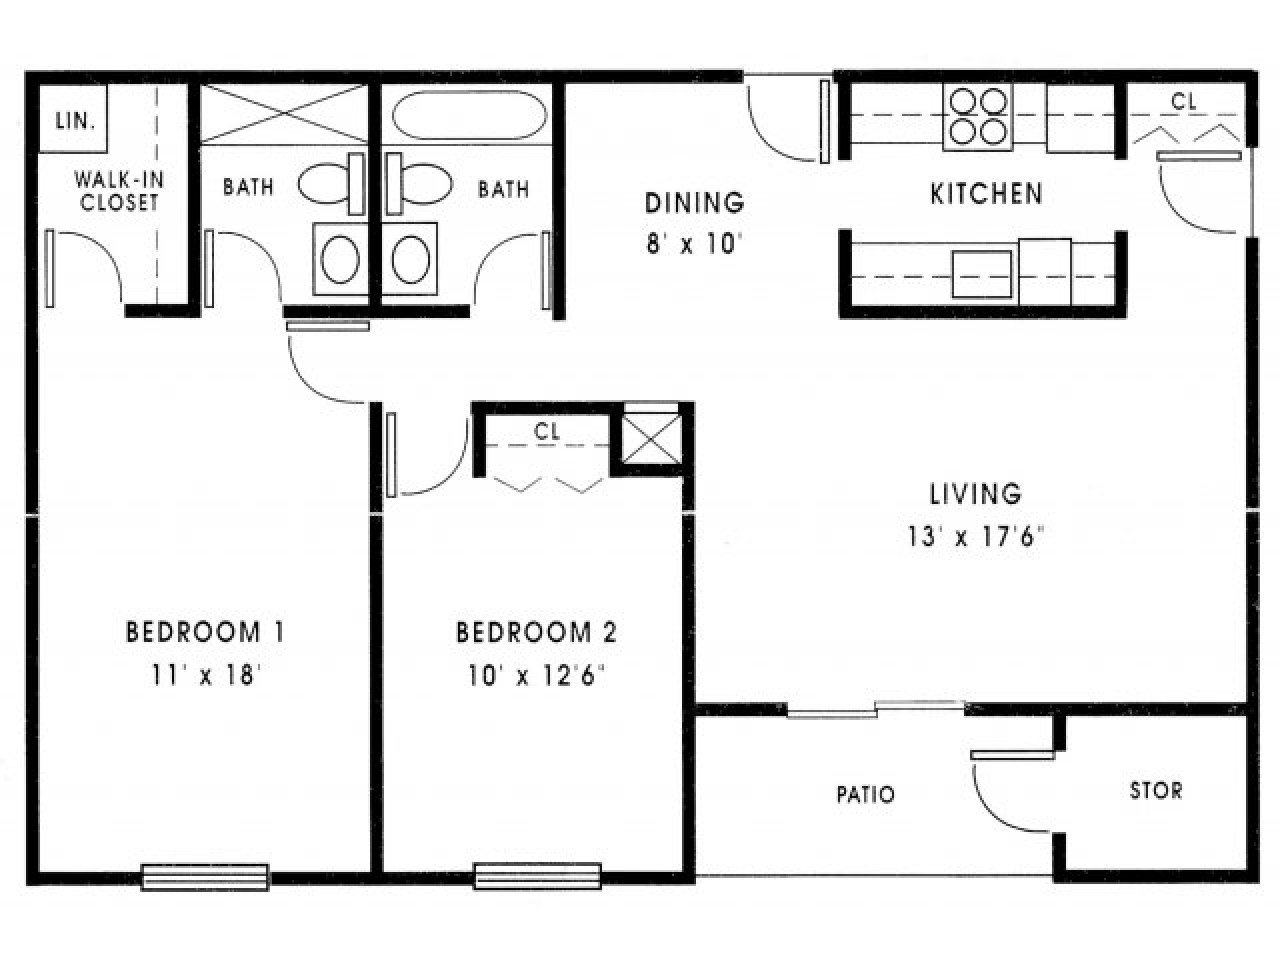 Best Small 2 Bedroom House Plans 1000 Sq Ft Small 2 Bedroom With Pictures